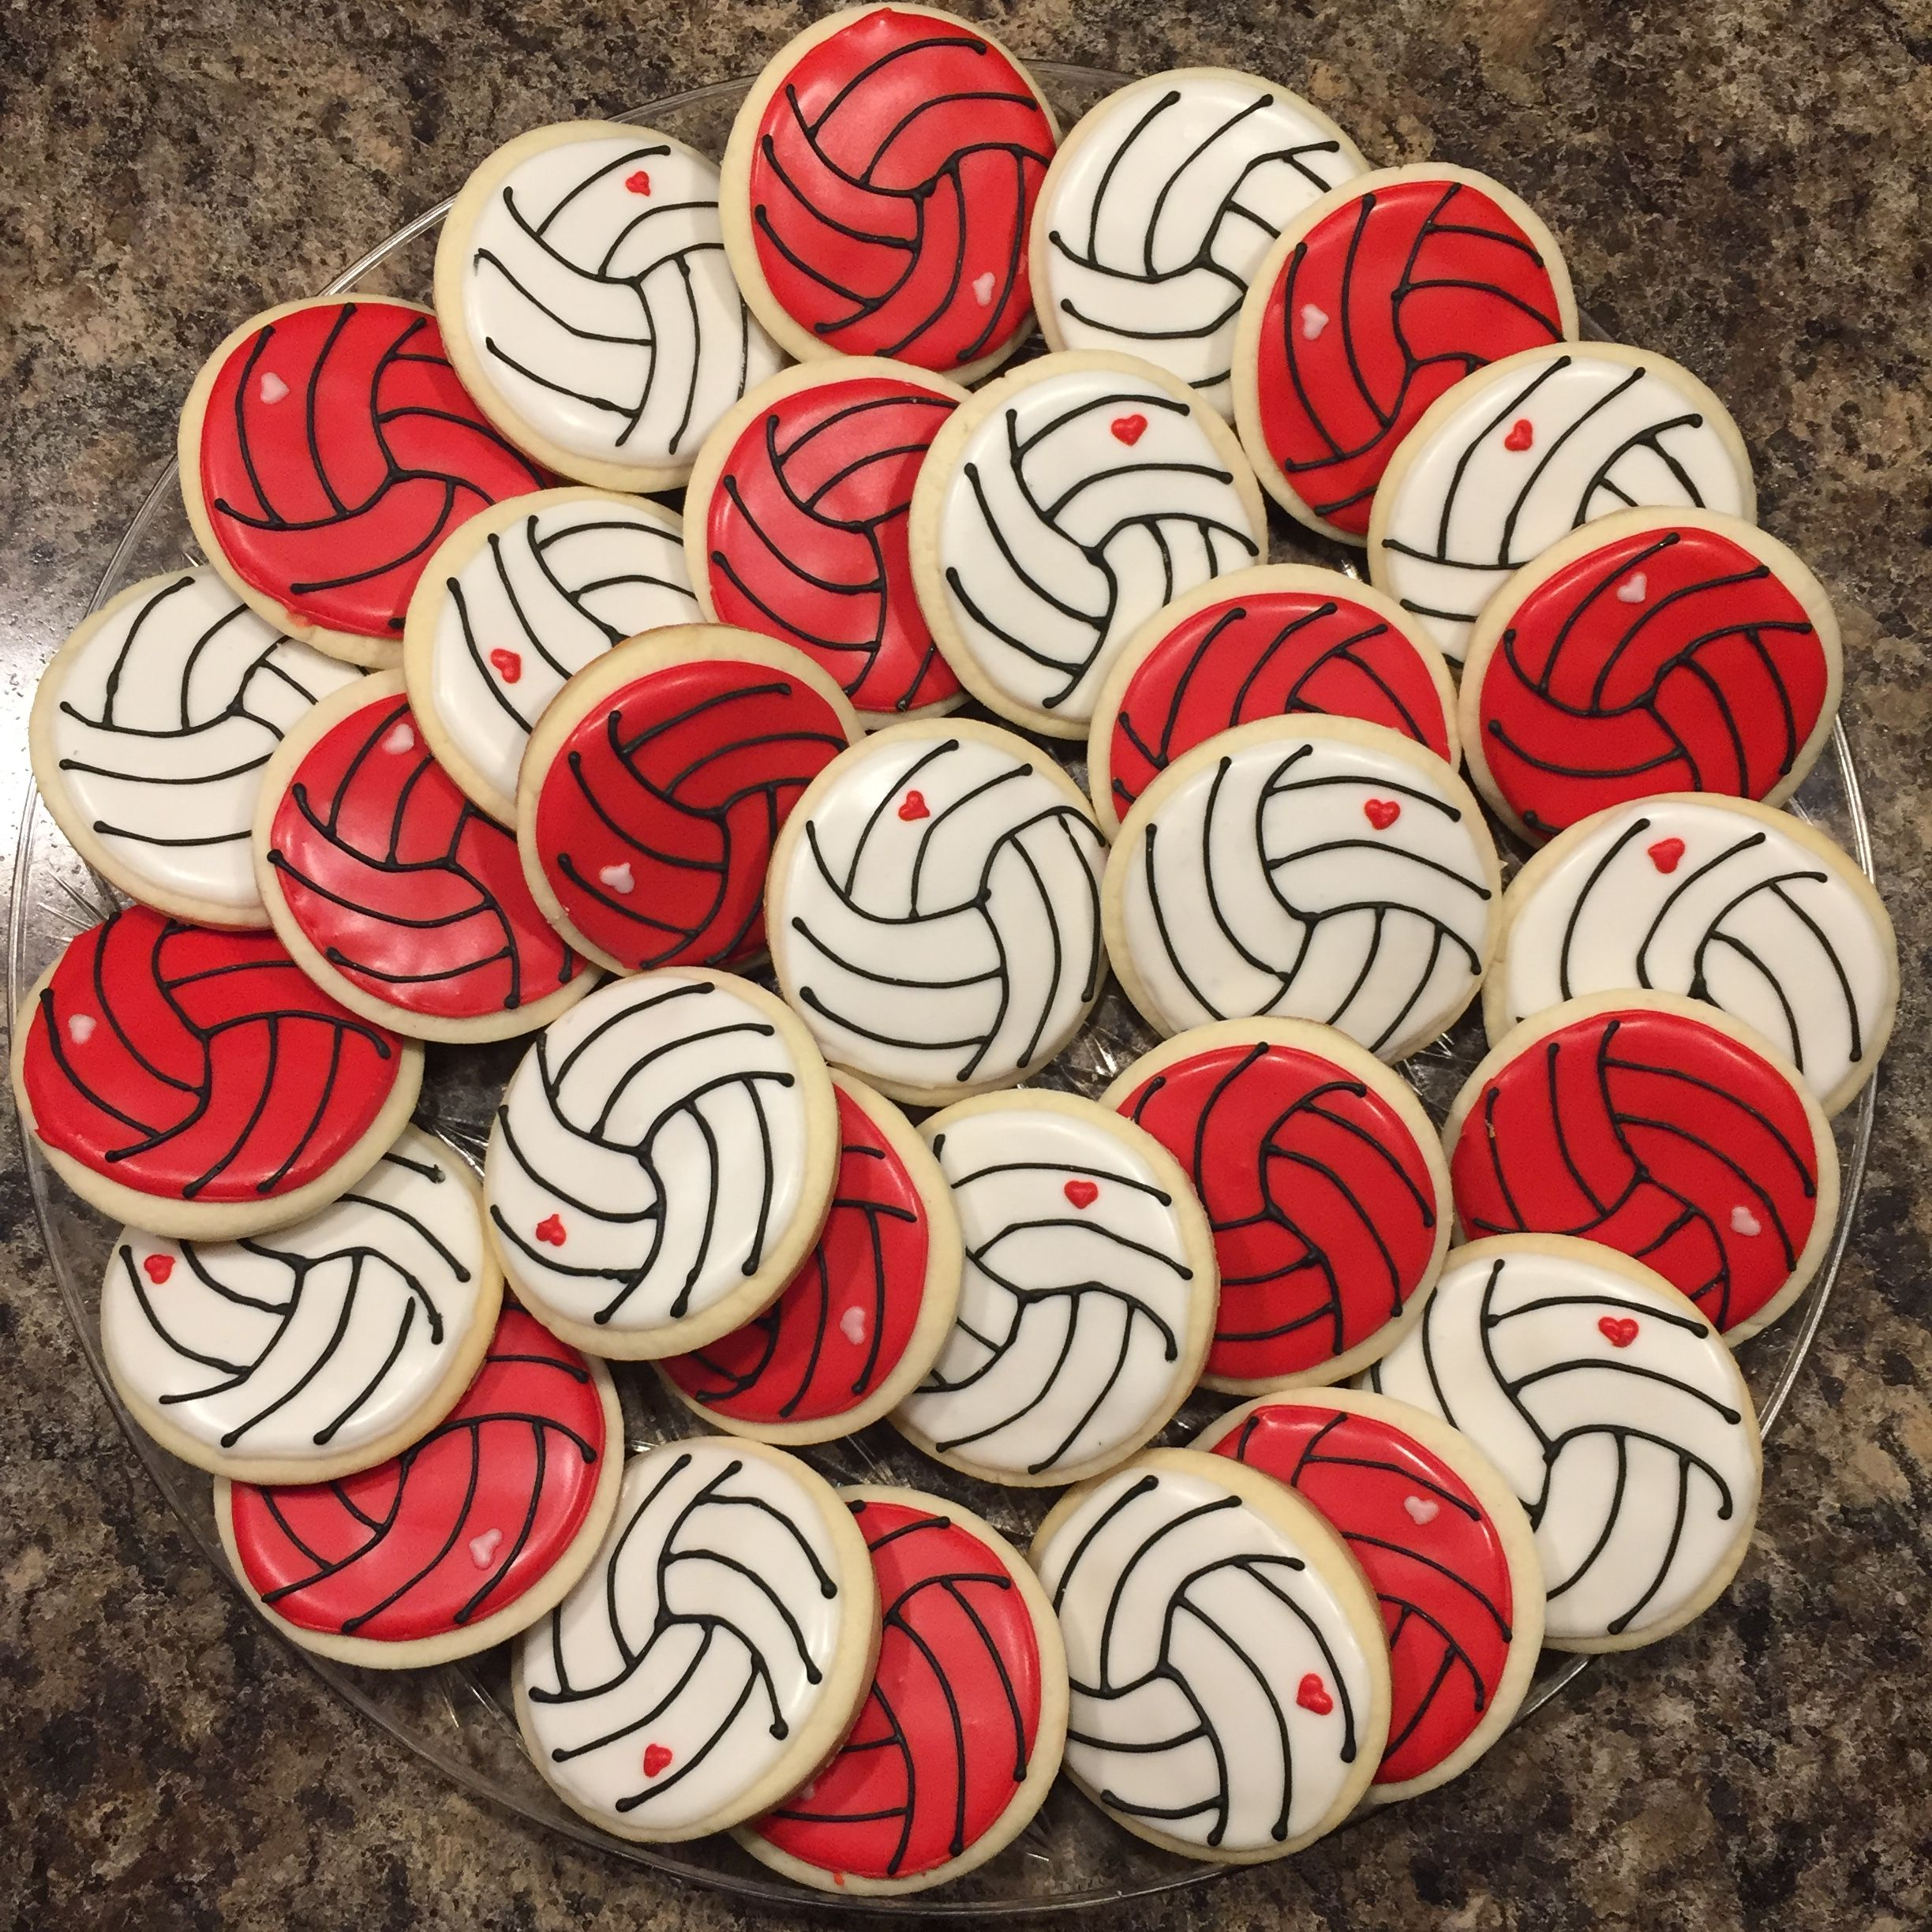 Volleyball Cookies Highschool Volleyball Royal Icing Sugar Cookies Decorated Cookies Volleyba Royal Icing Sugar Sugar Cookies Decorated Sugar Cookies